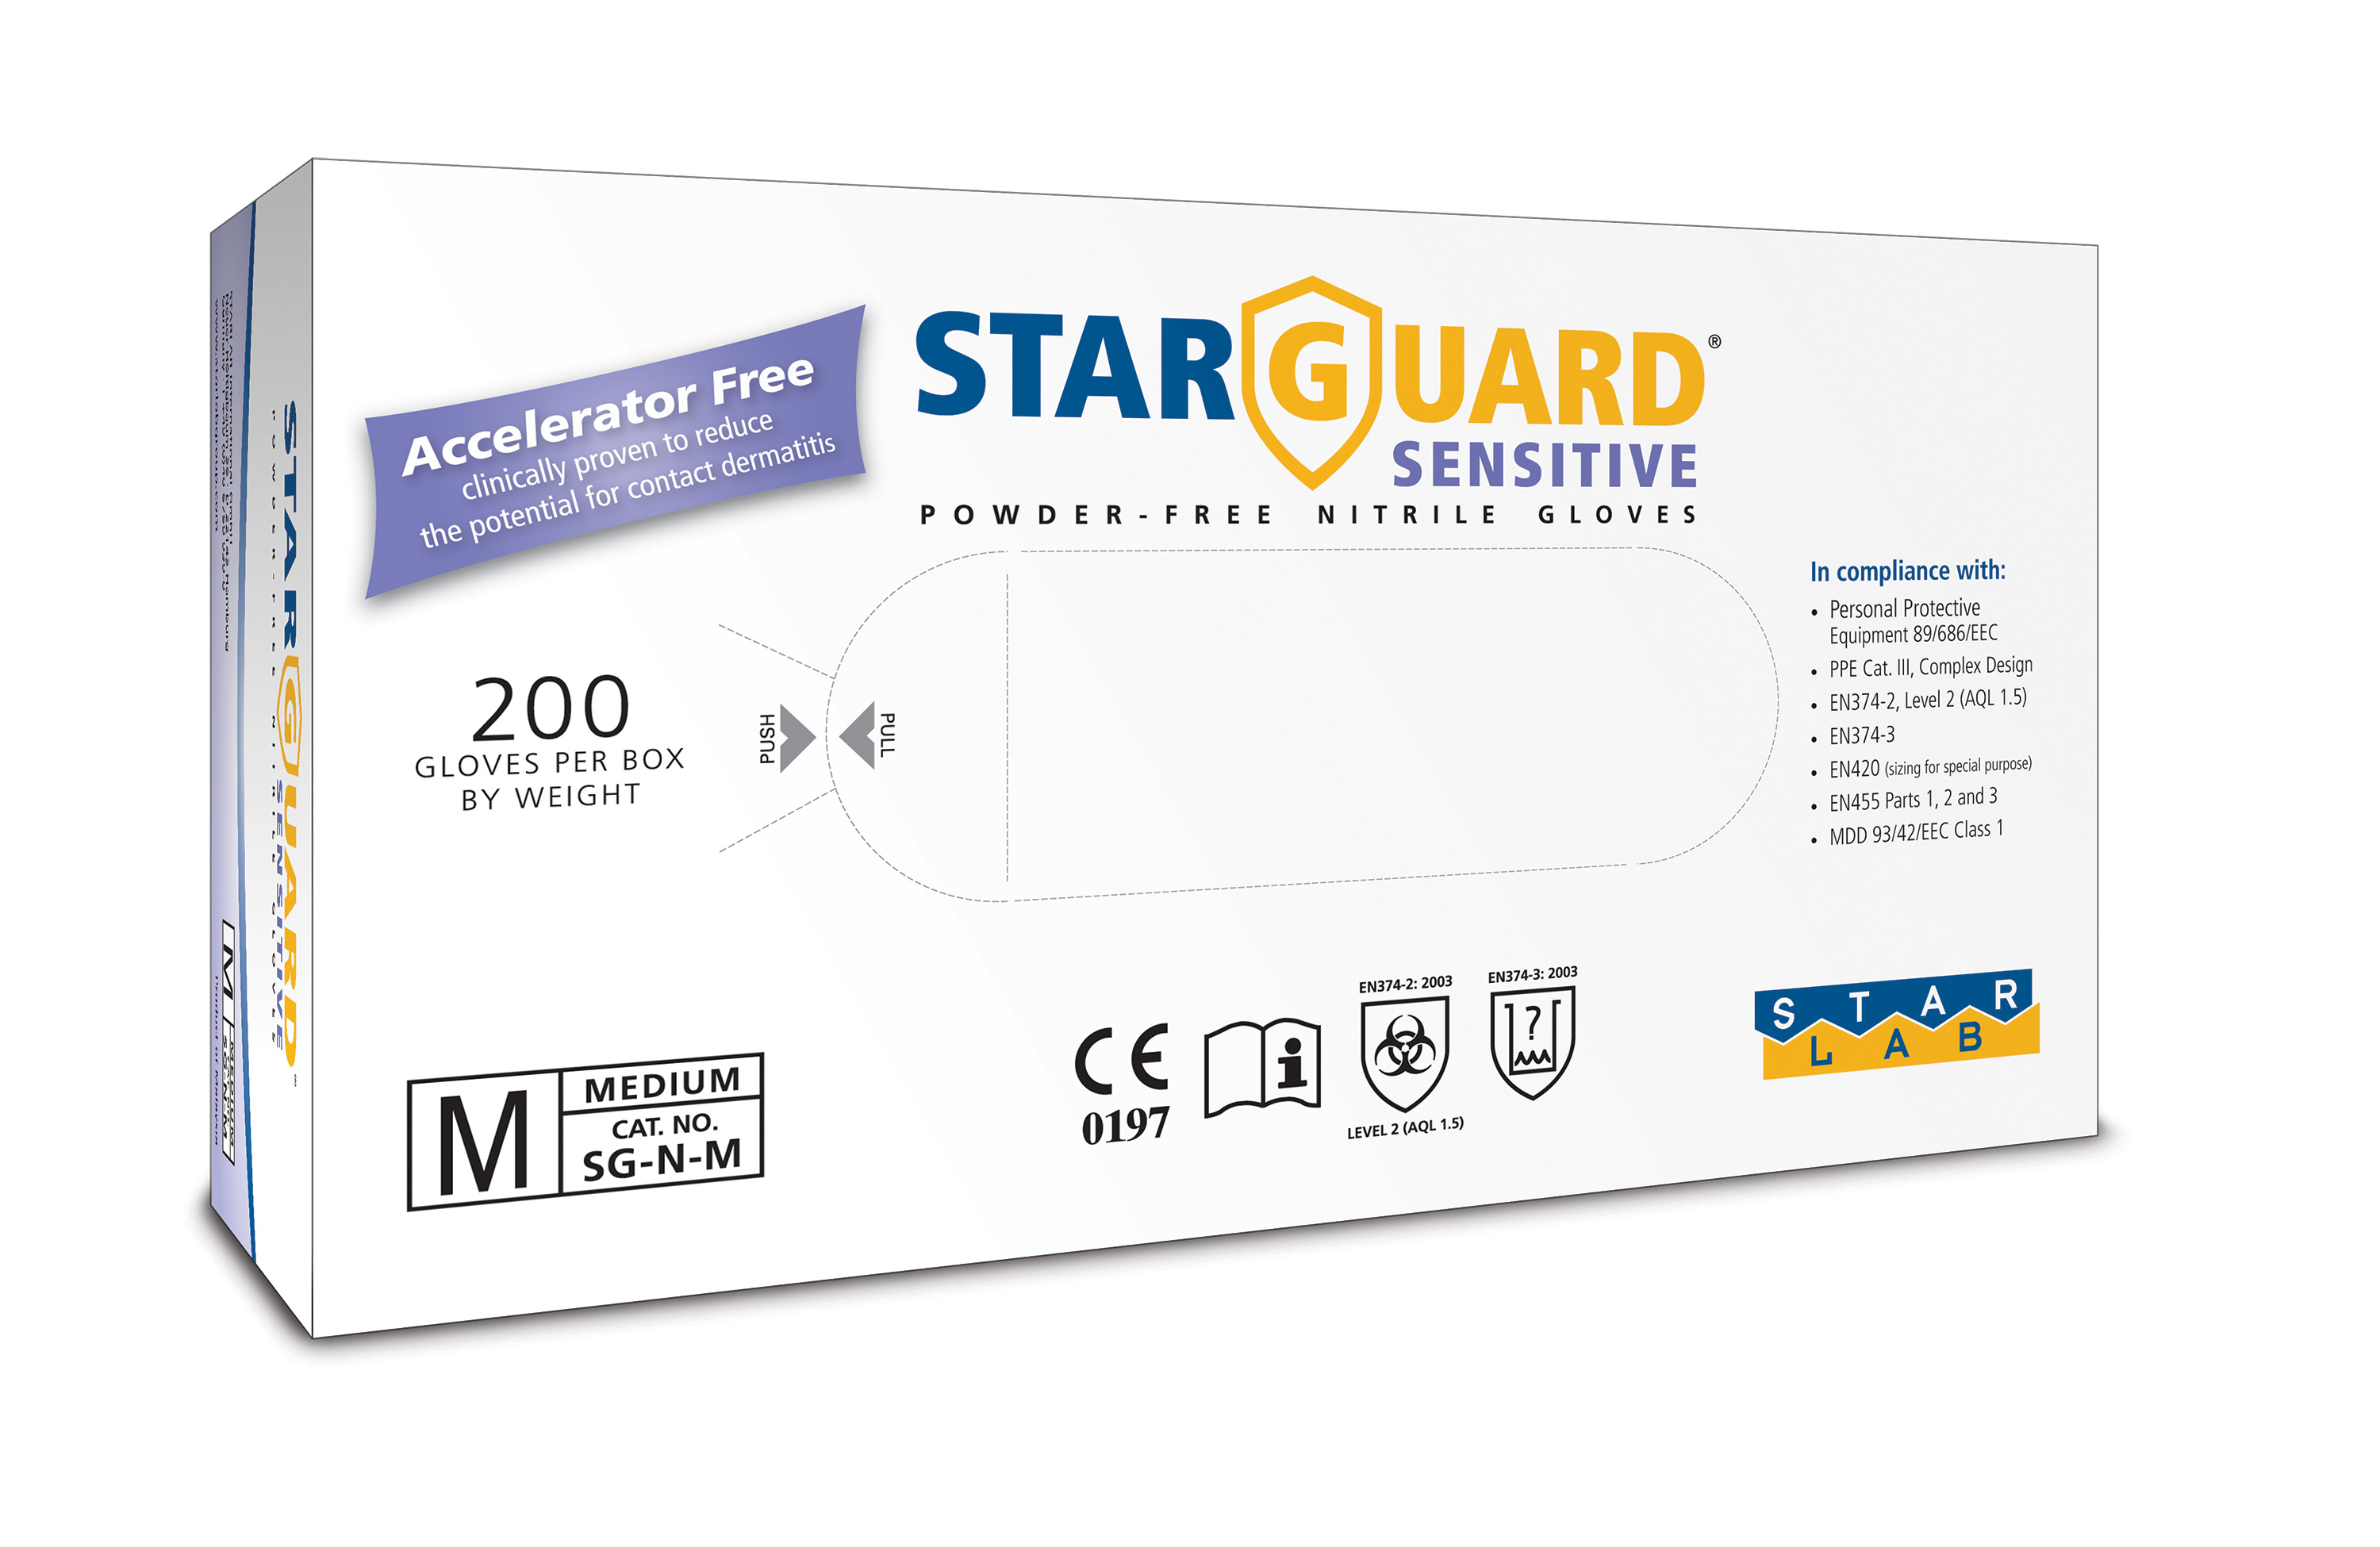 StarGuard SENSITIVE Nitrile Gloves, Powder Free, Blue, Size S, Pk/ 10 x 200 gloves - just sFr. 7,85/100 gloves